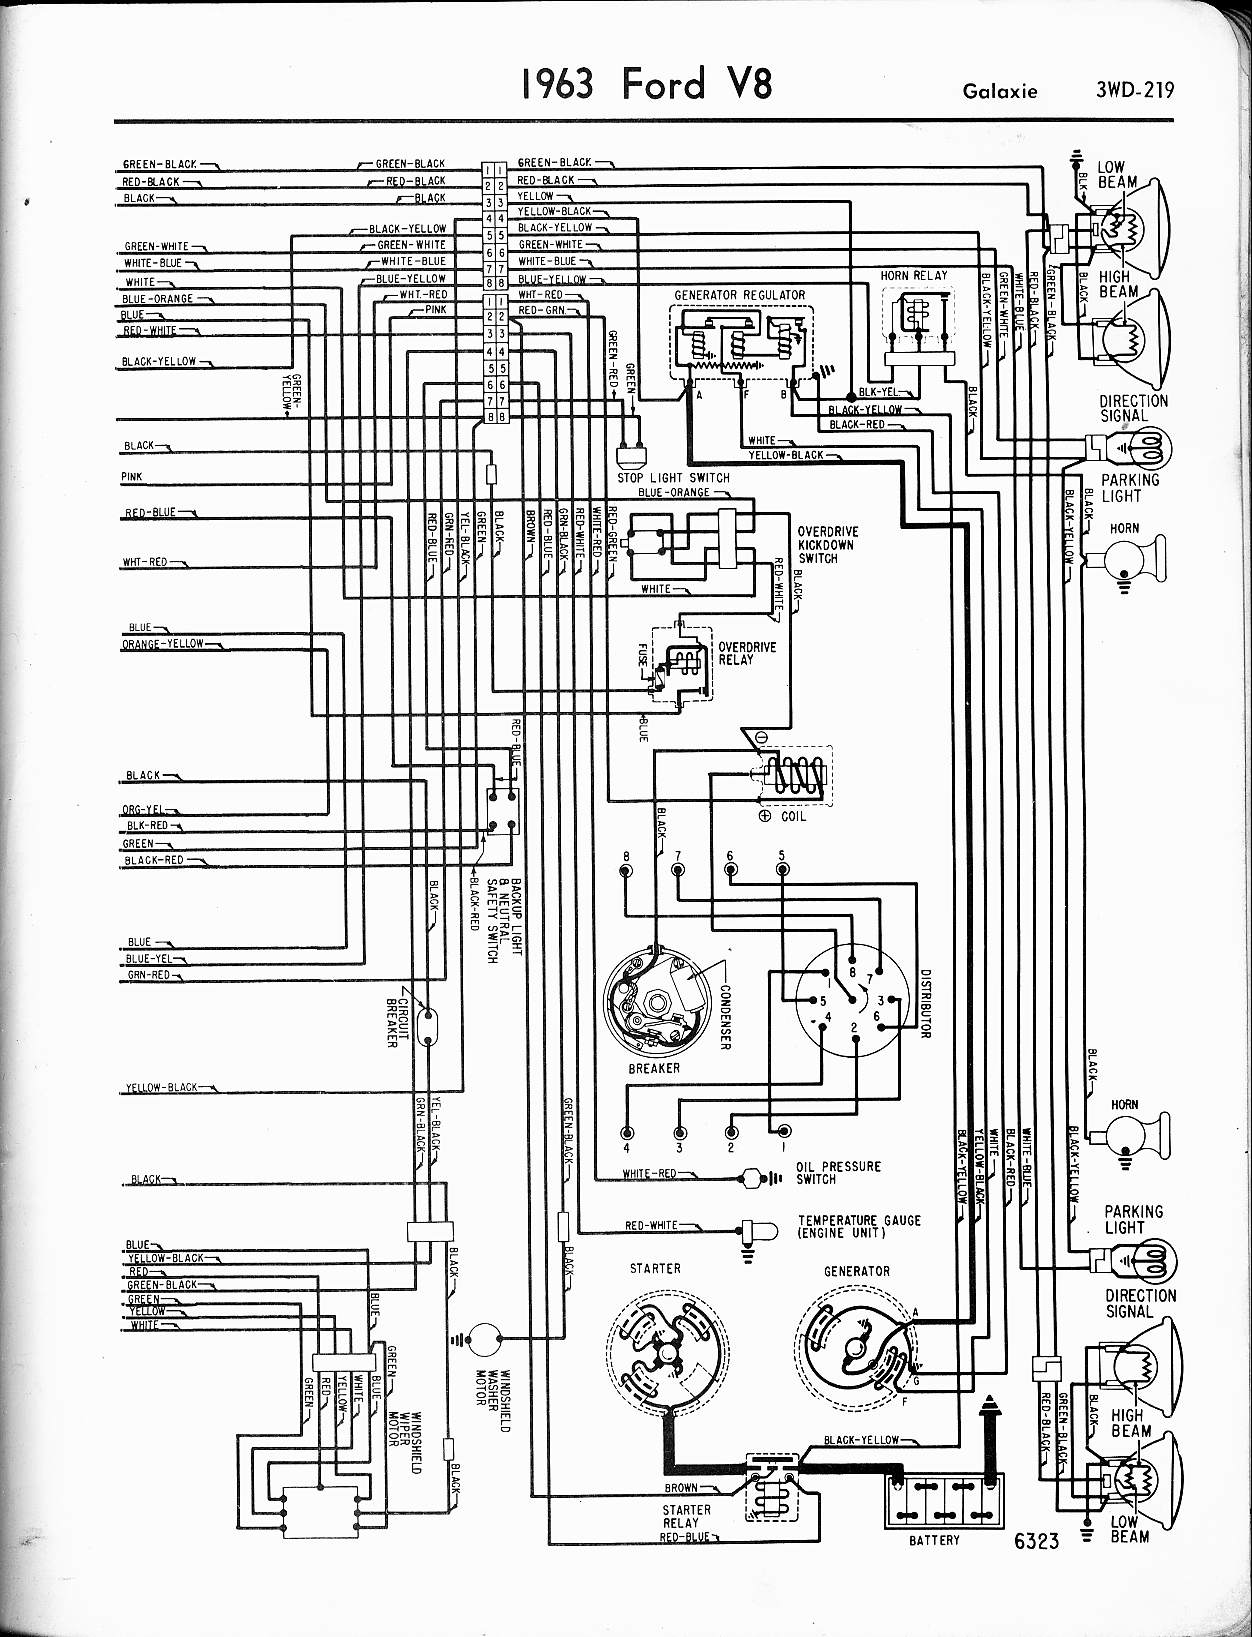 477797 Circuit Breaker on 1967 mustang ignition switch wiring diagram